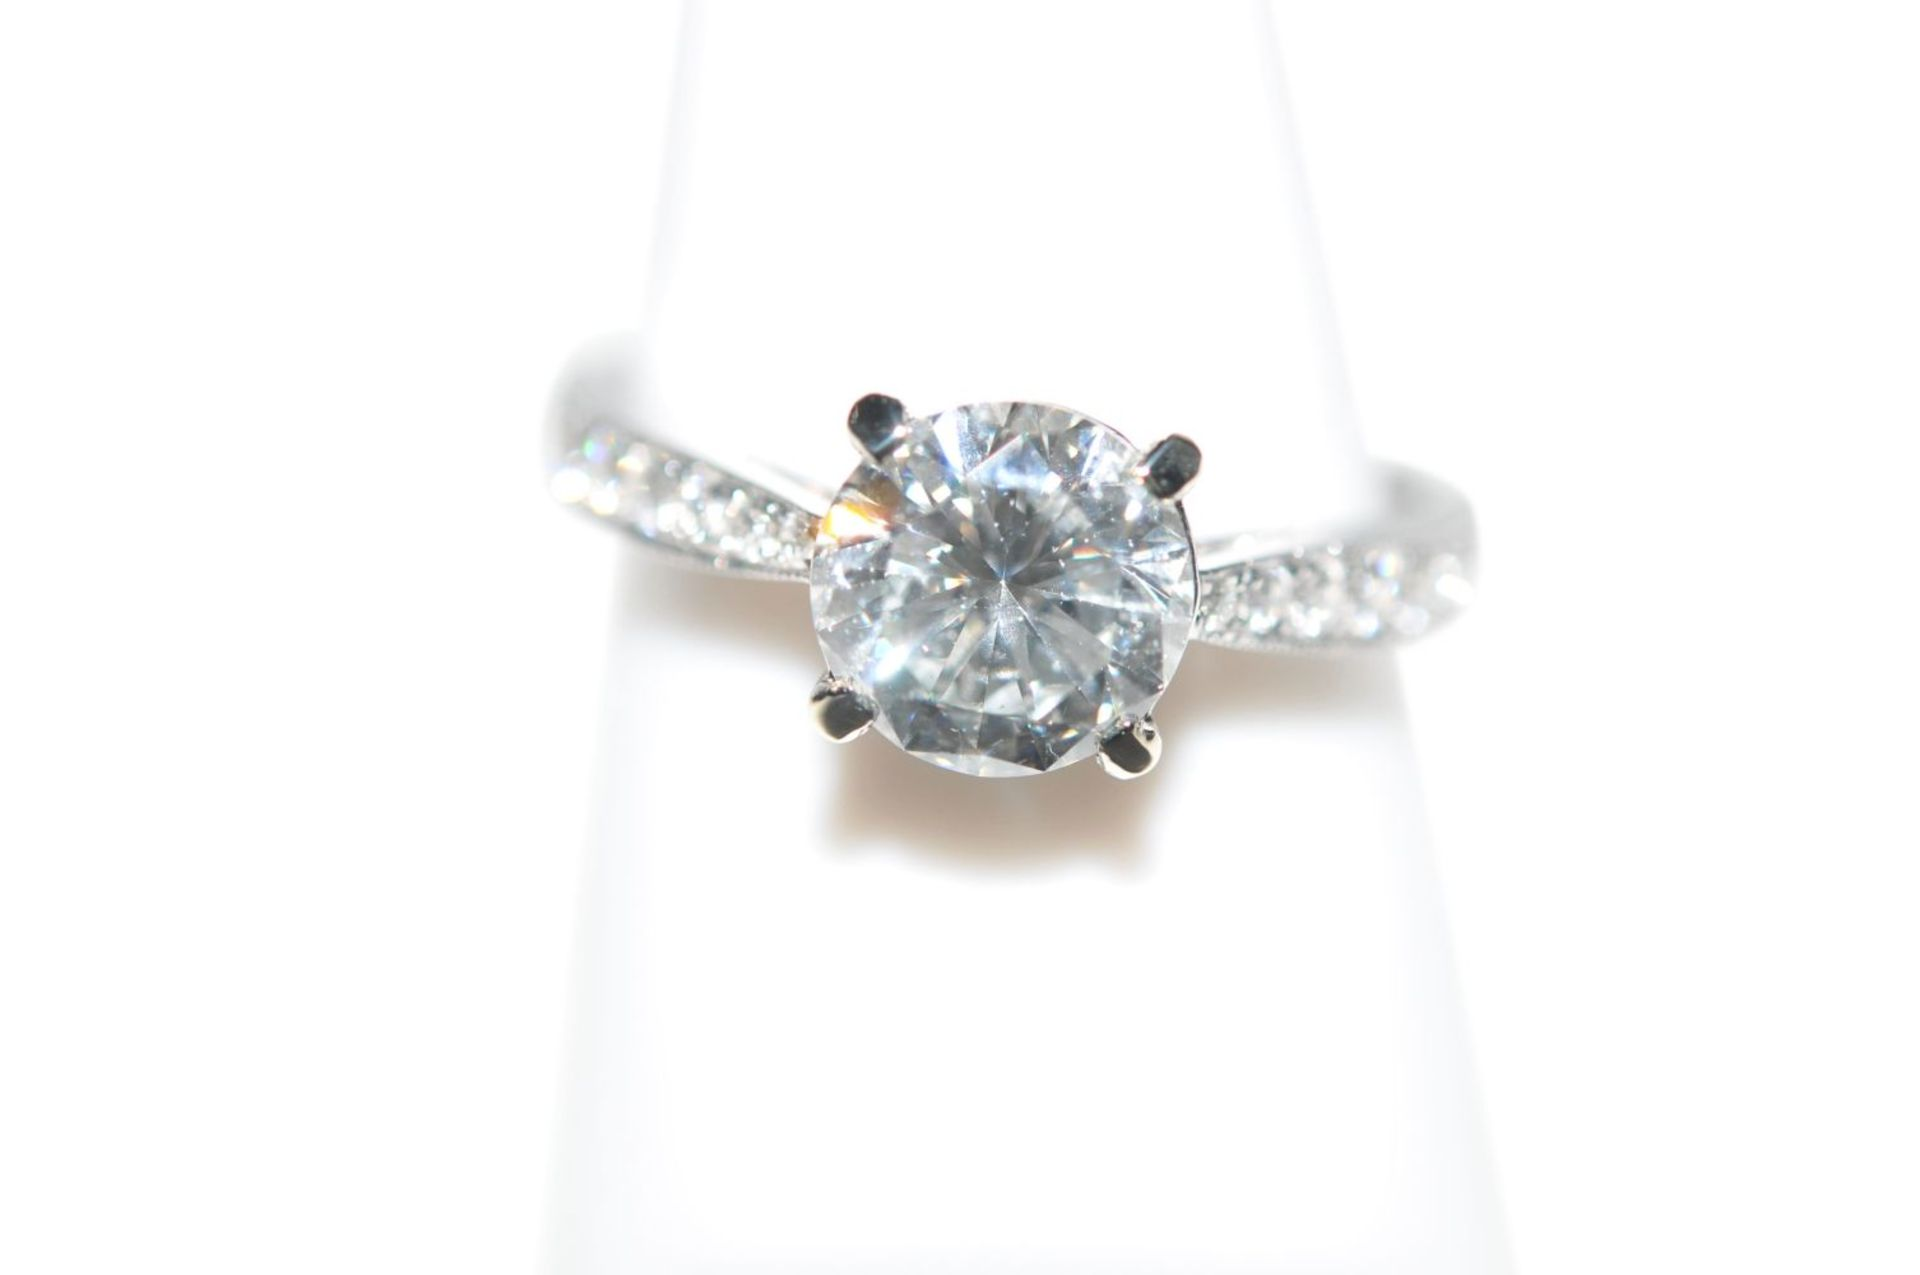 Los 117 - Brilliant solitaire, 1.25ct18kt white gold ring with a diamond approx. 1.25 ct, and brilliants total